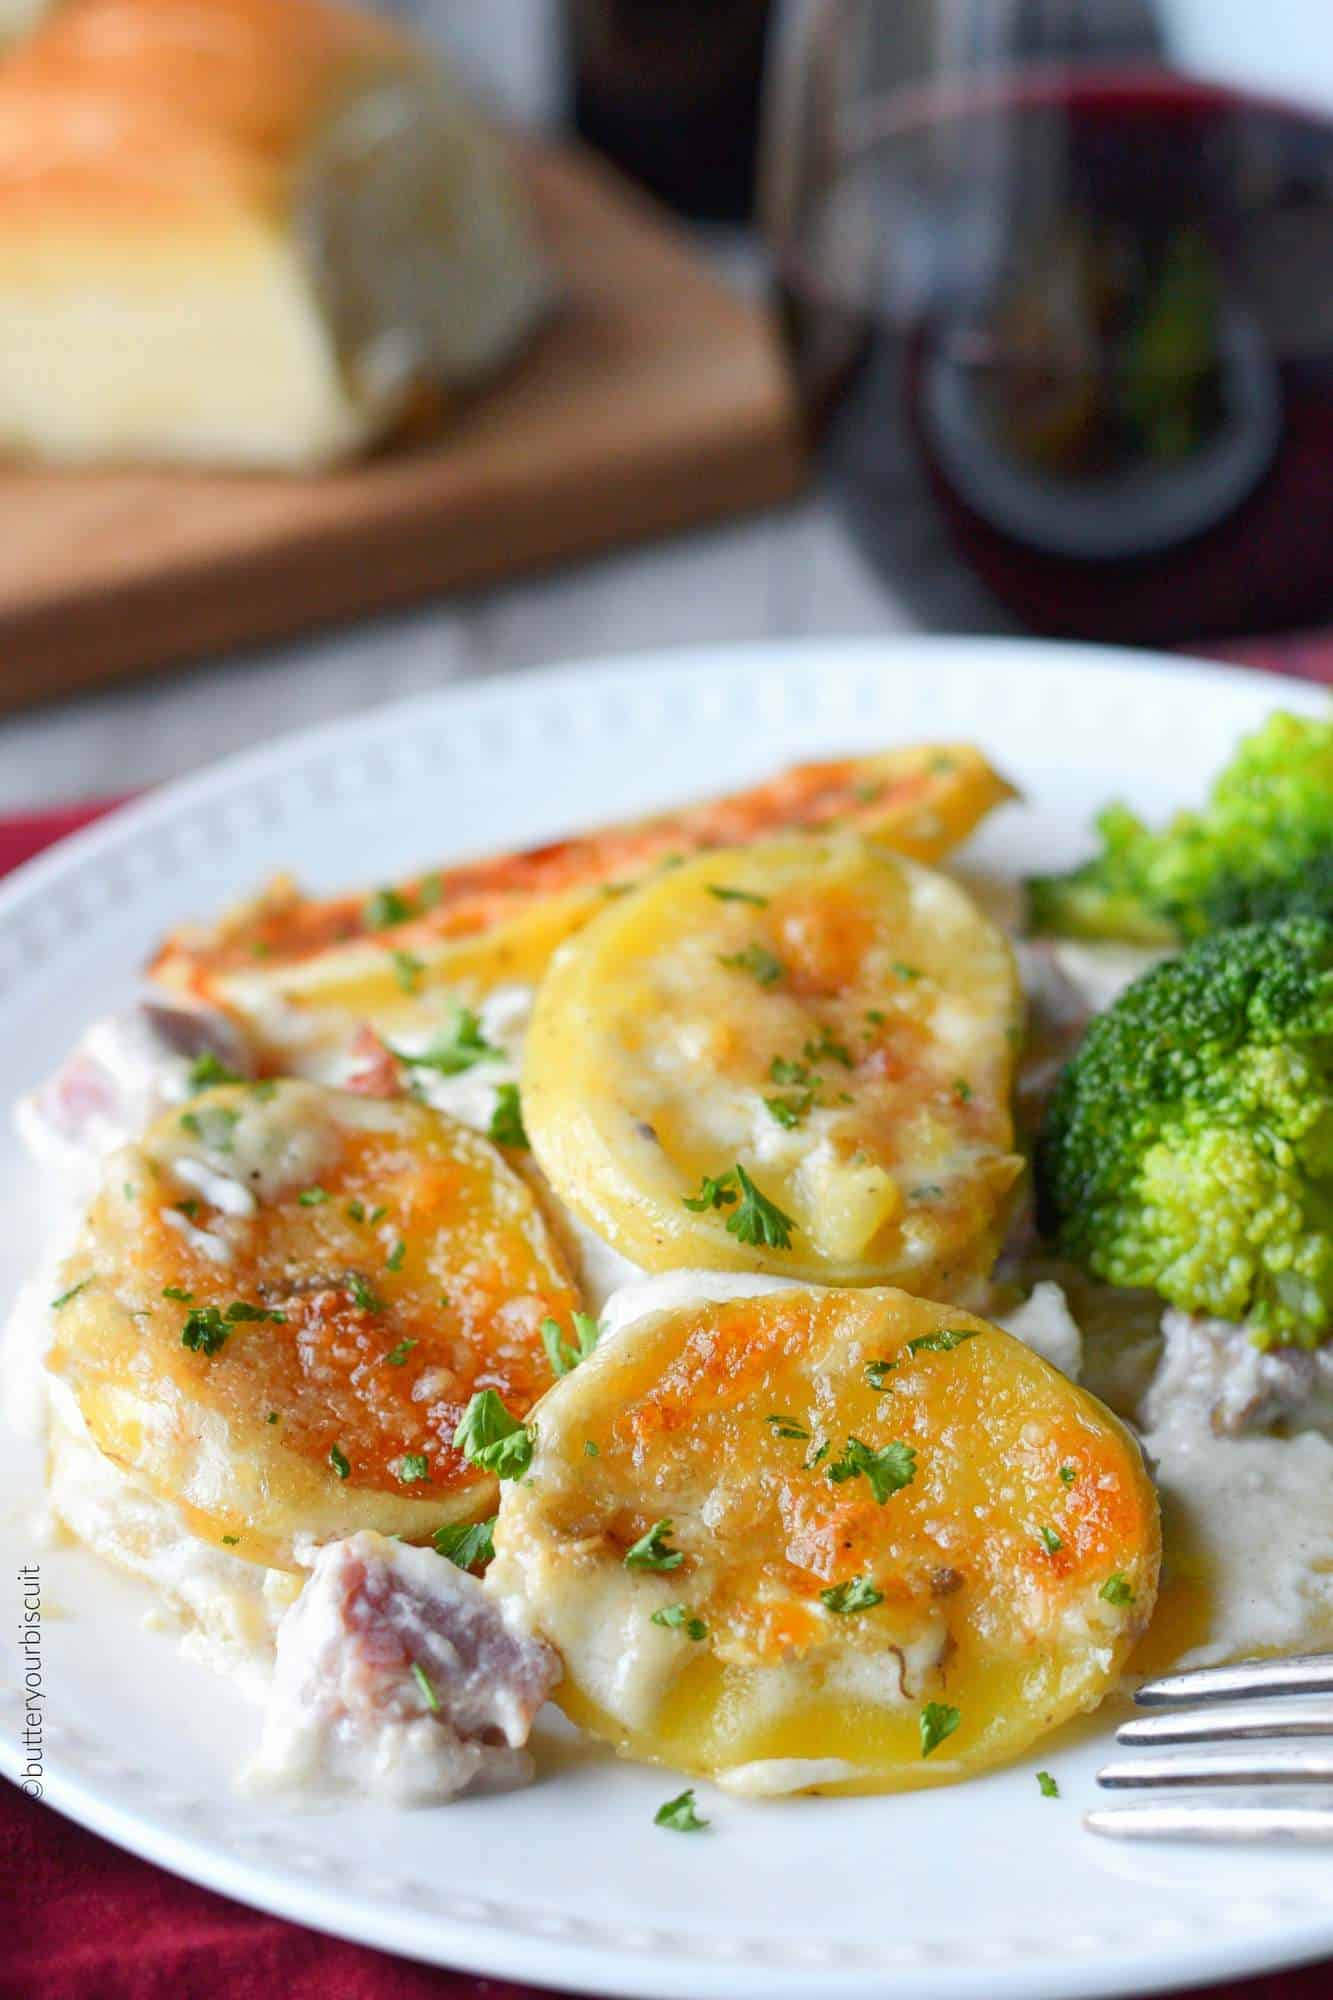 Parmesan Scalloped potatoes and ham on a dinner plate with broccoli